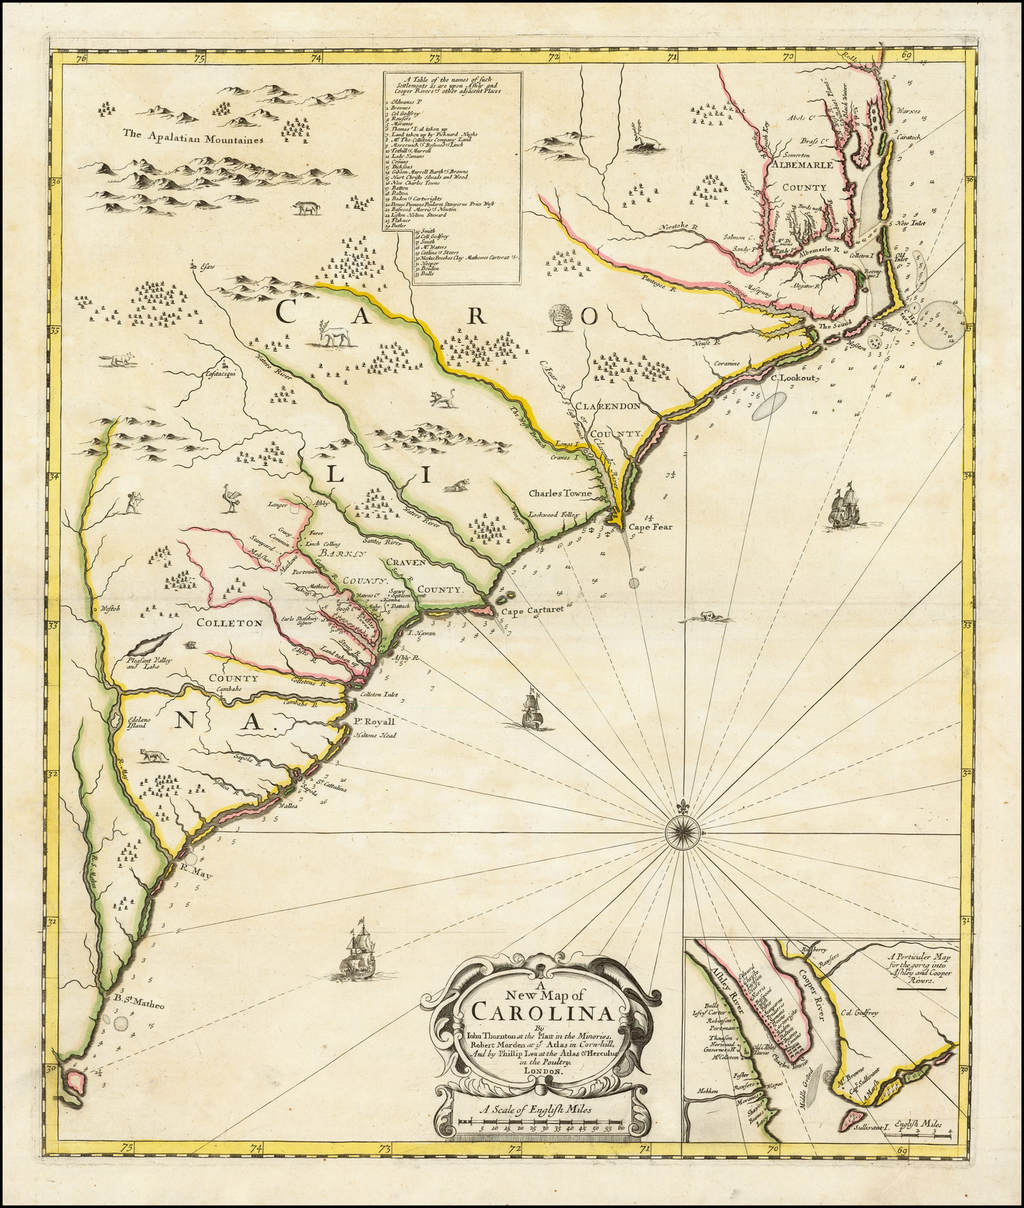 A New Map of Carolina By Iohn Thornton at the Platt in the Minories, Robert Morden at ye Atlas in Cornhill, And by Phillip Lea at the Atlas & Hercules in the Poultry, London. By Robert Morden  &  Philip Lea  &  John Thornton